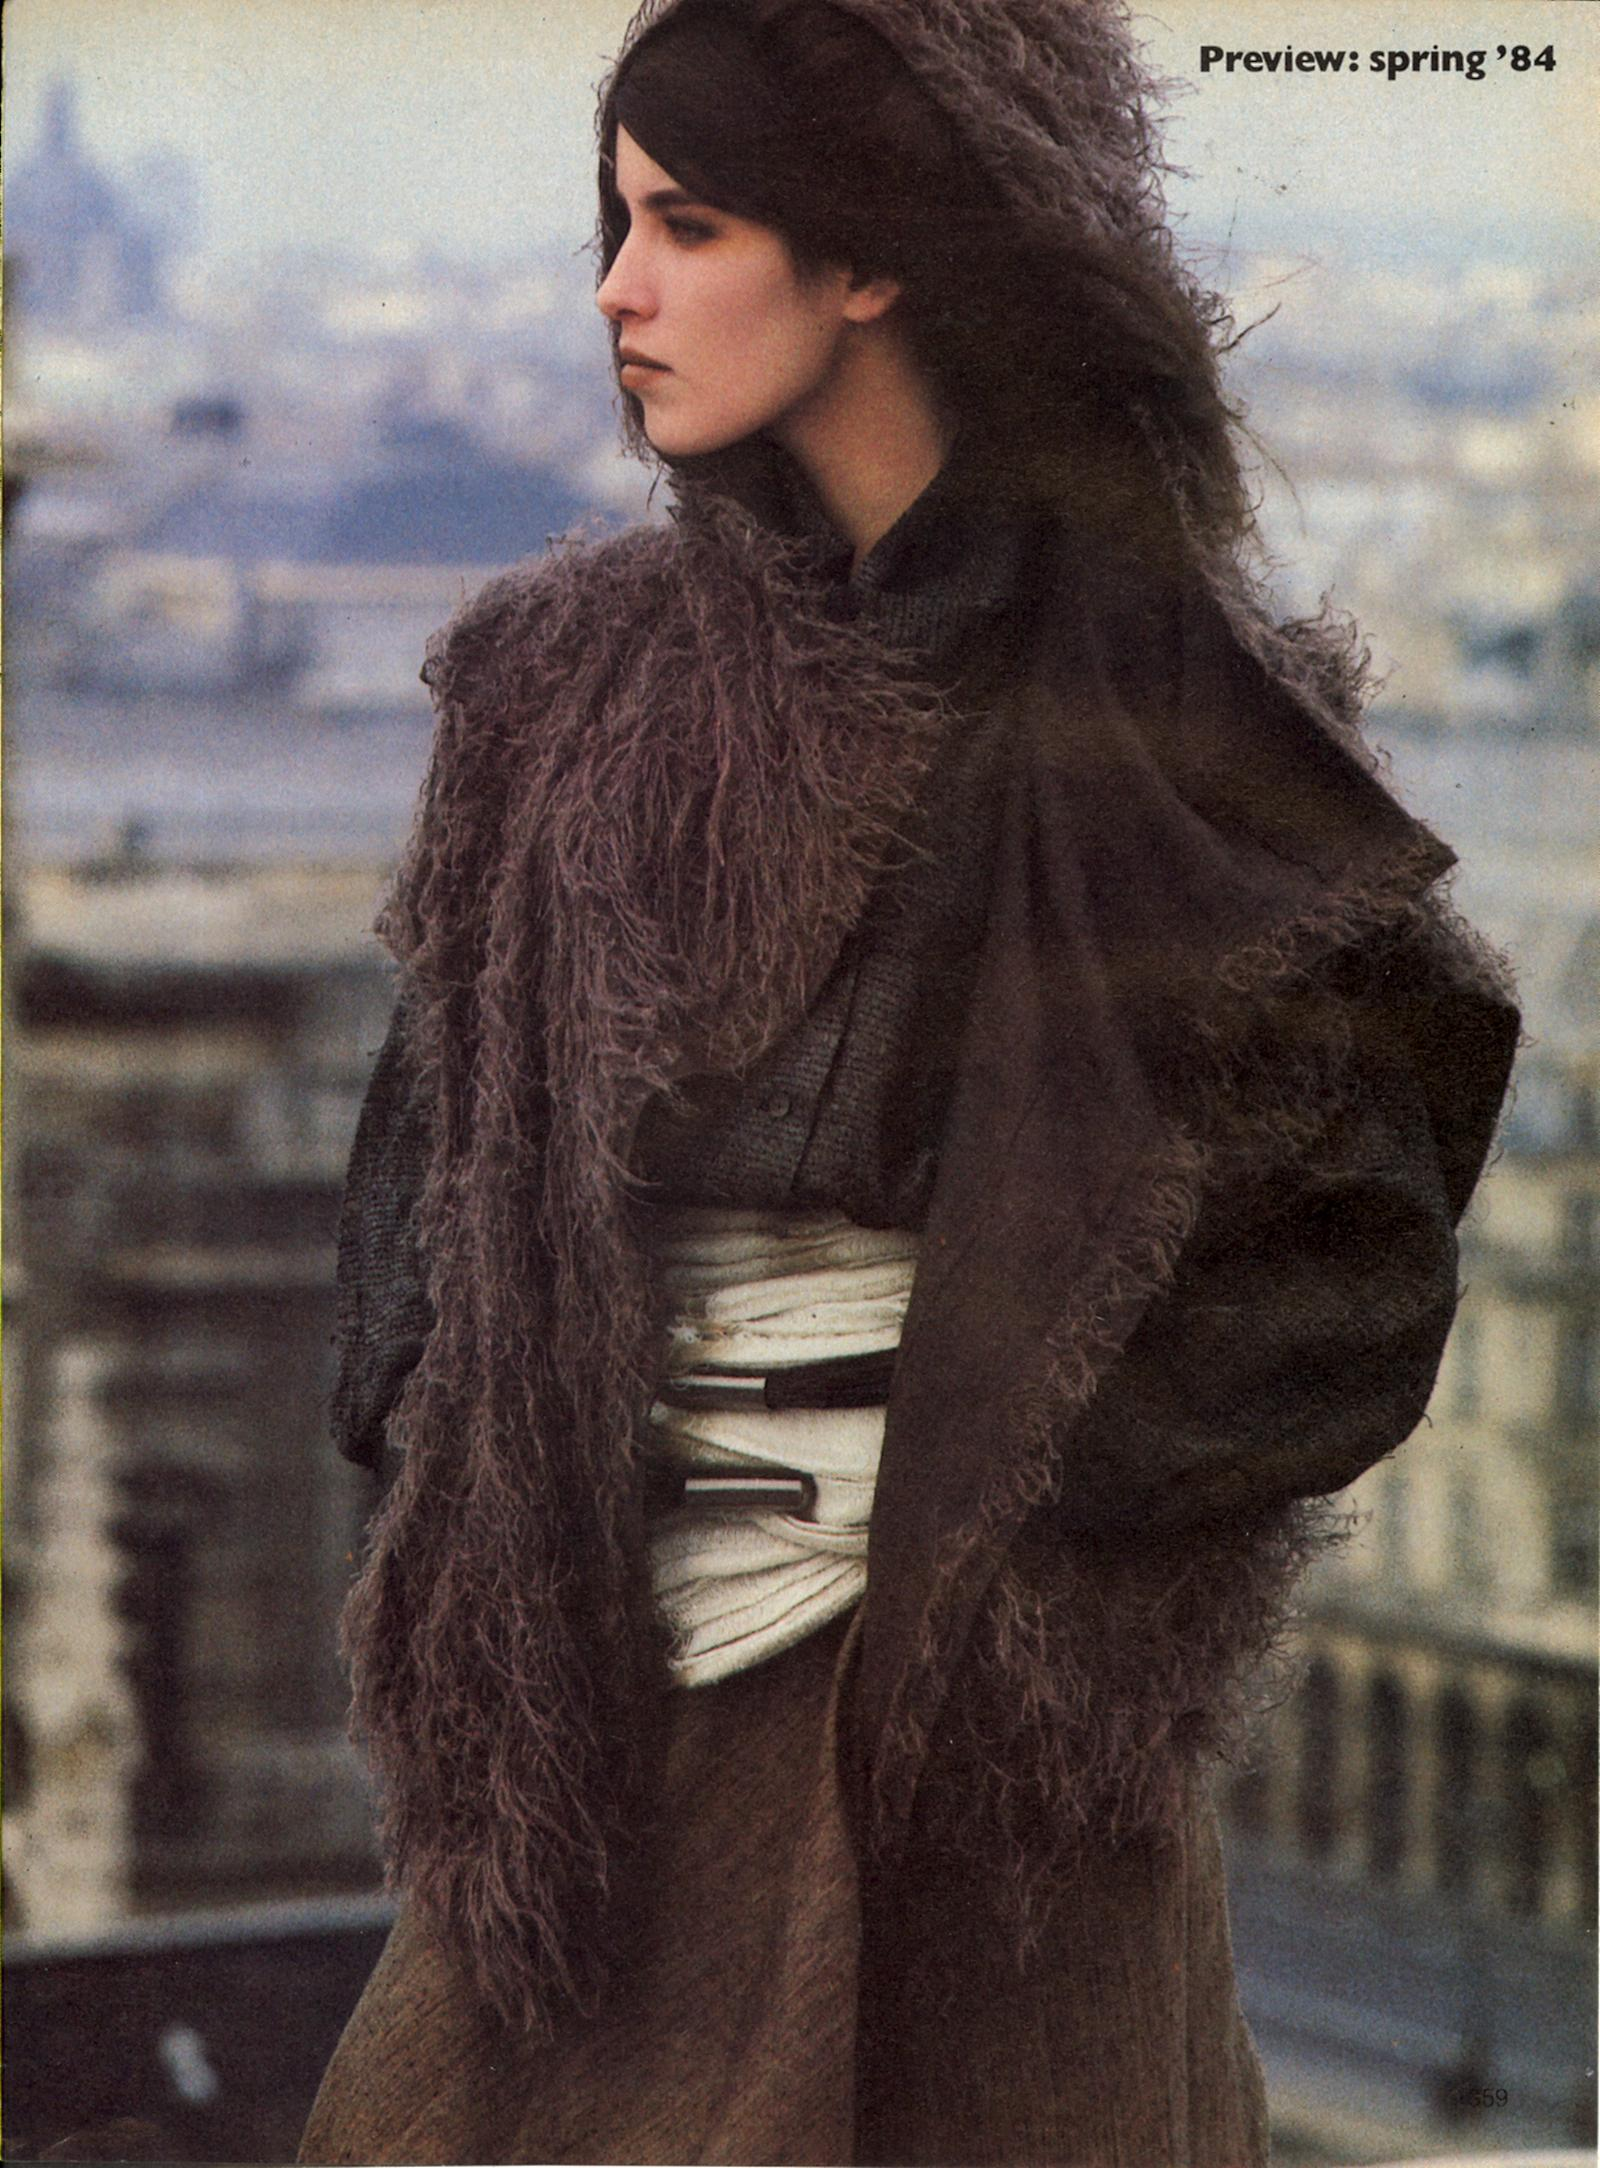 Vogue (US) December 1983 | Spring '84 Ideas 04.jpg